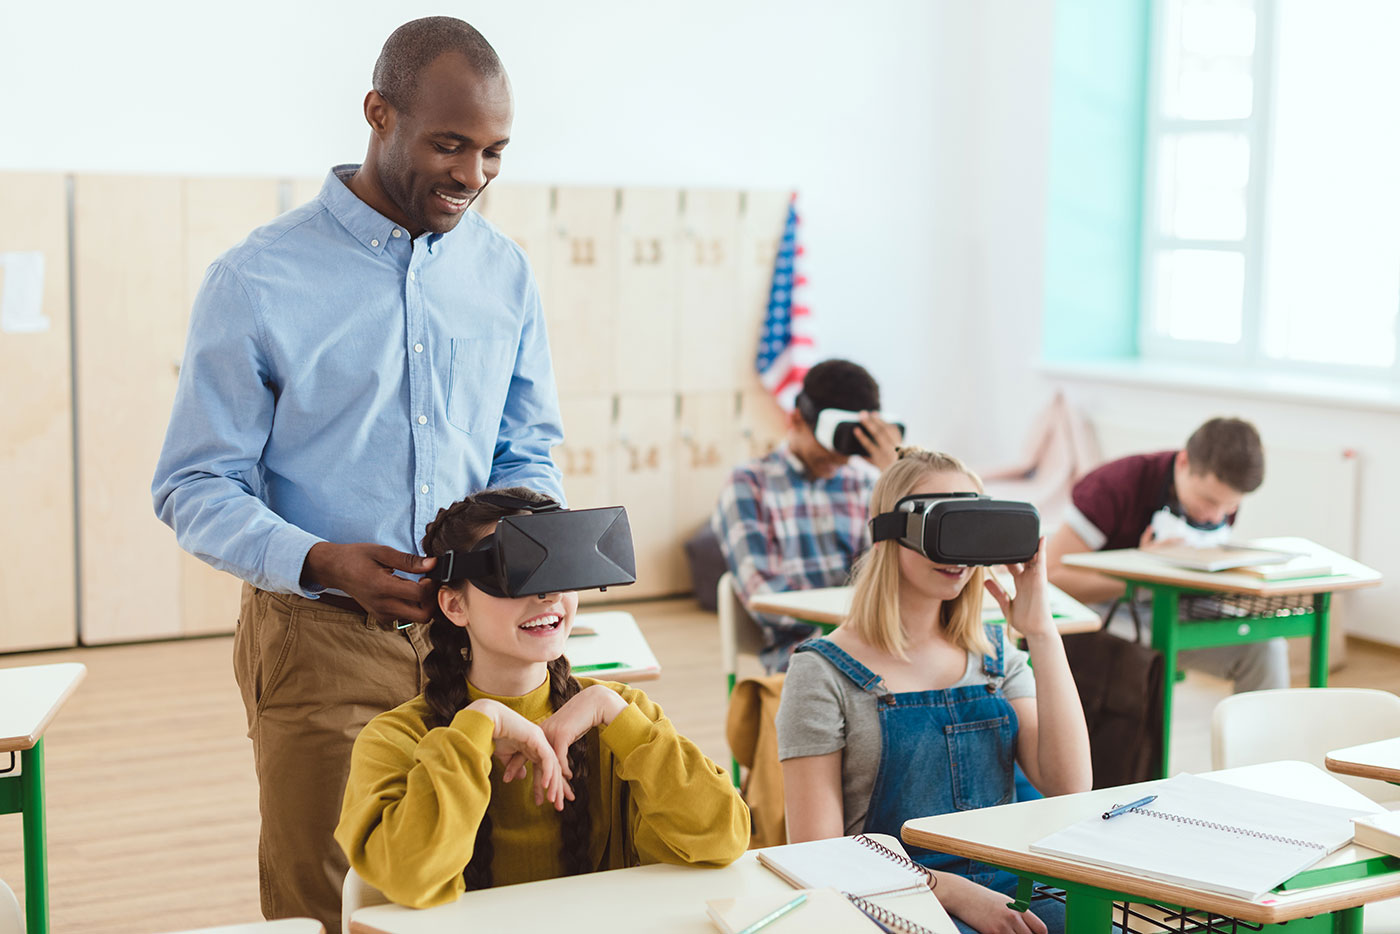 Virtual Reality in a Classroom